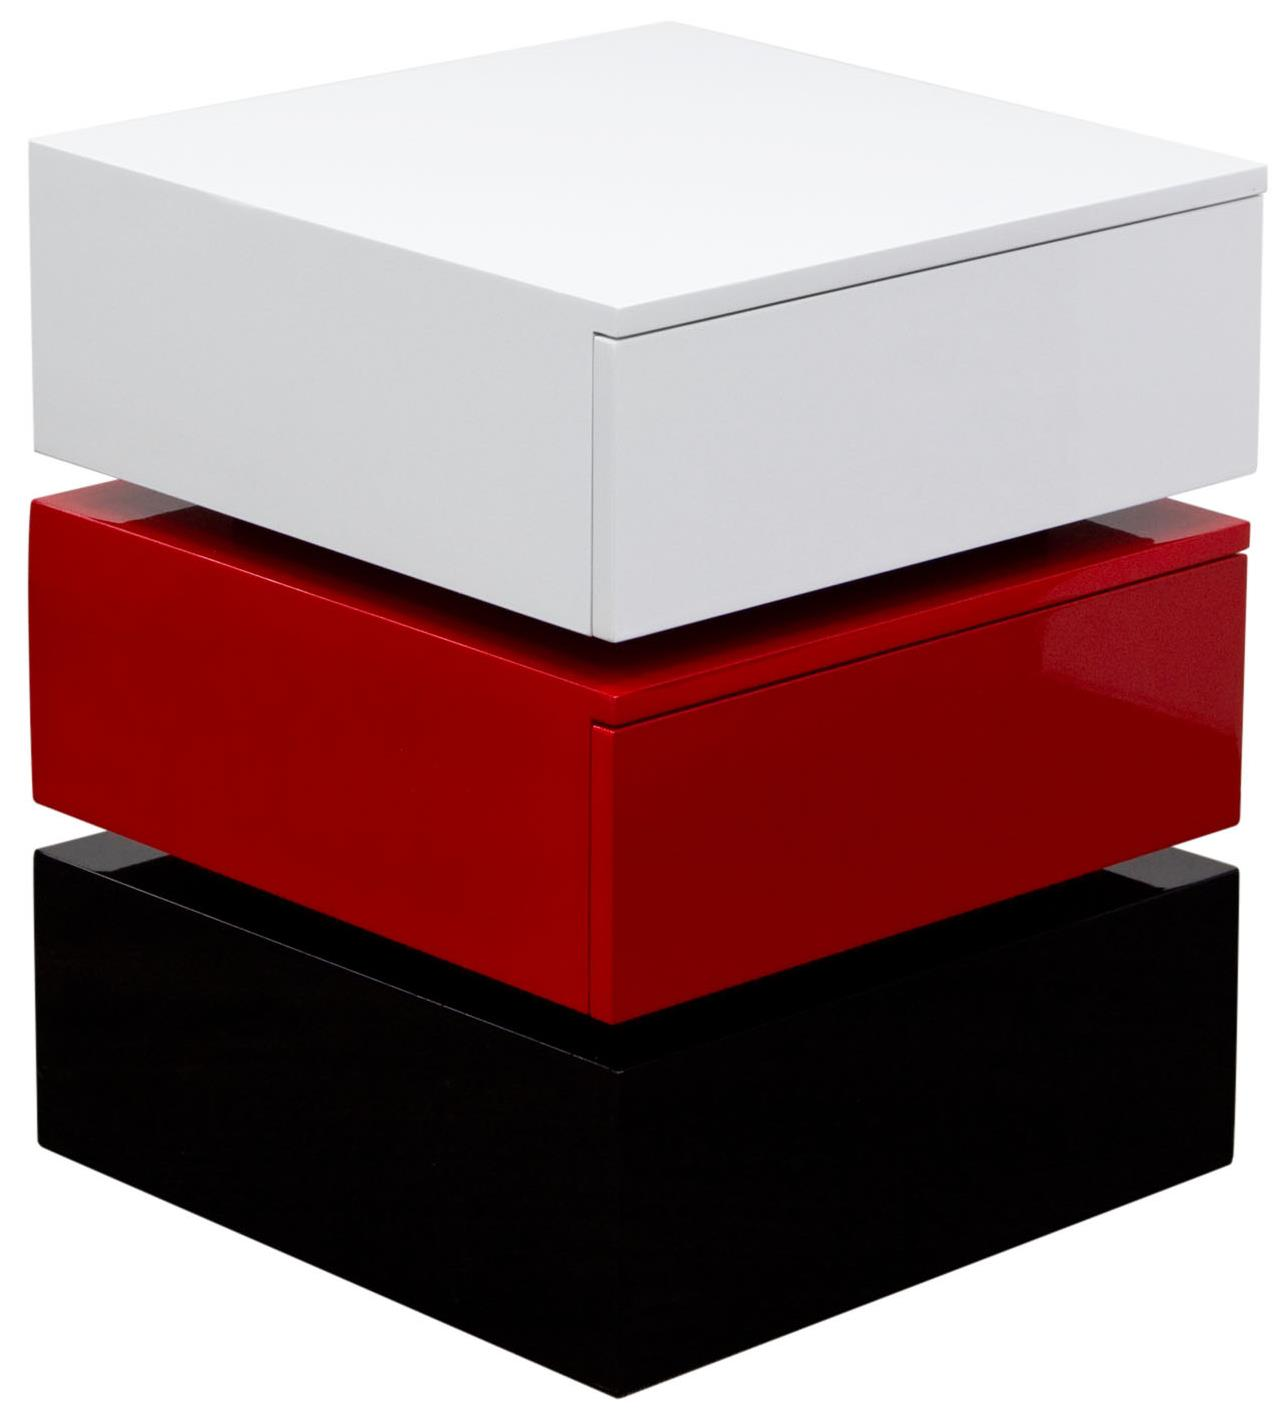 Diamond Sofa Occasional Tables & Entertainment Tri-Color Accent Table with Two Drawers - Item Number: SPARKNSRE